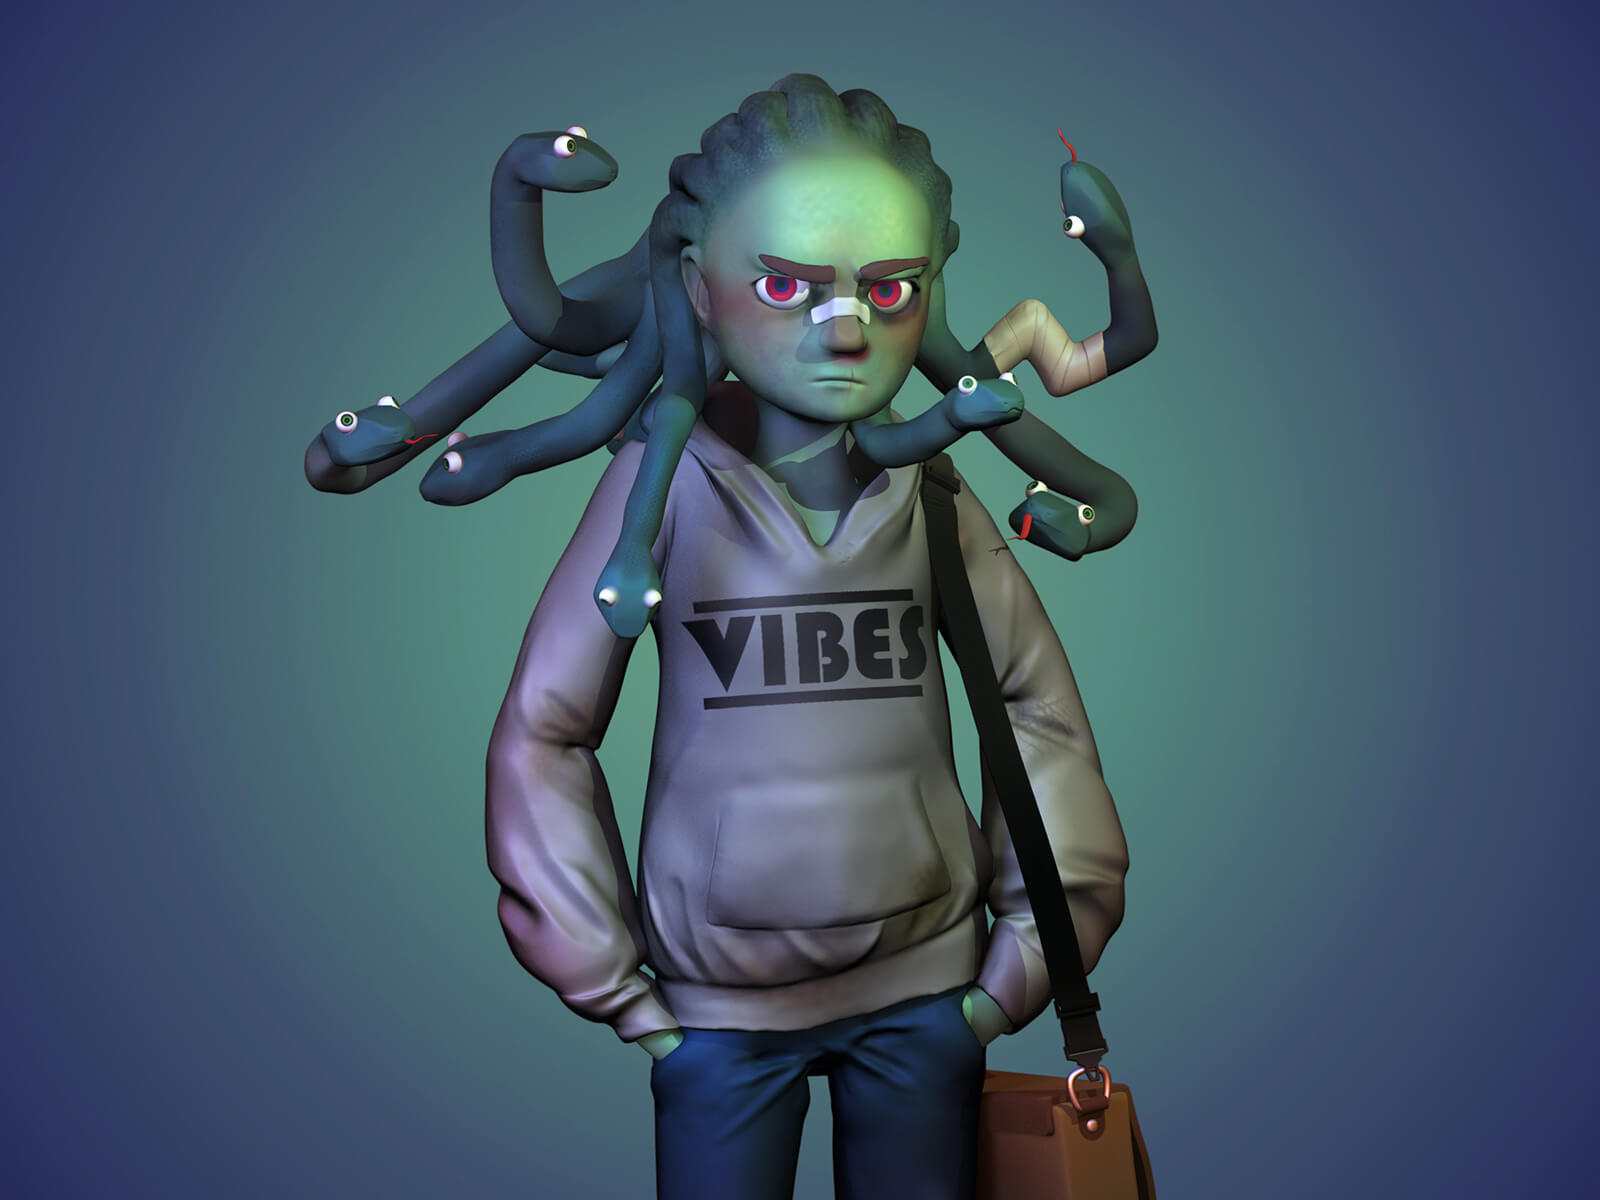 A character with snakes for hair wearing a sweatshirt and jeans